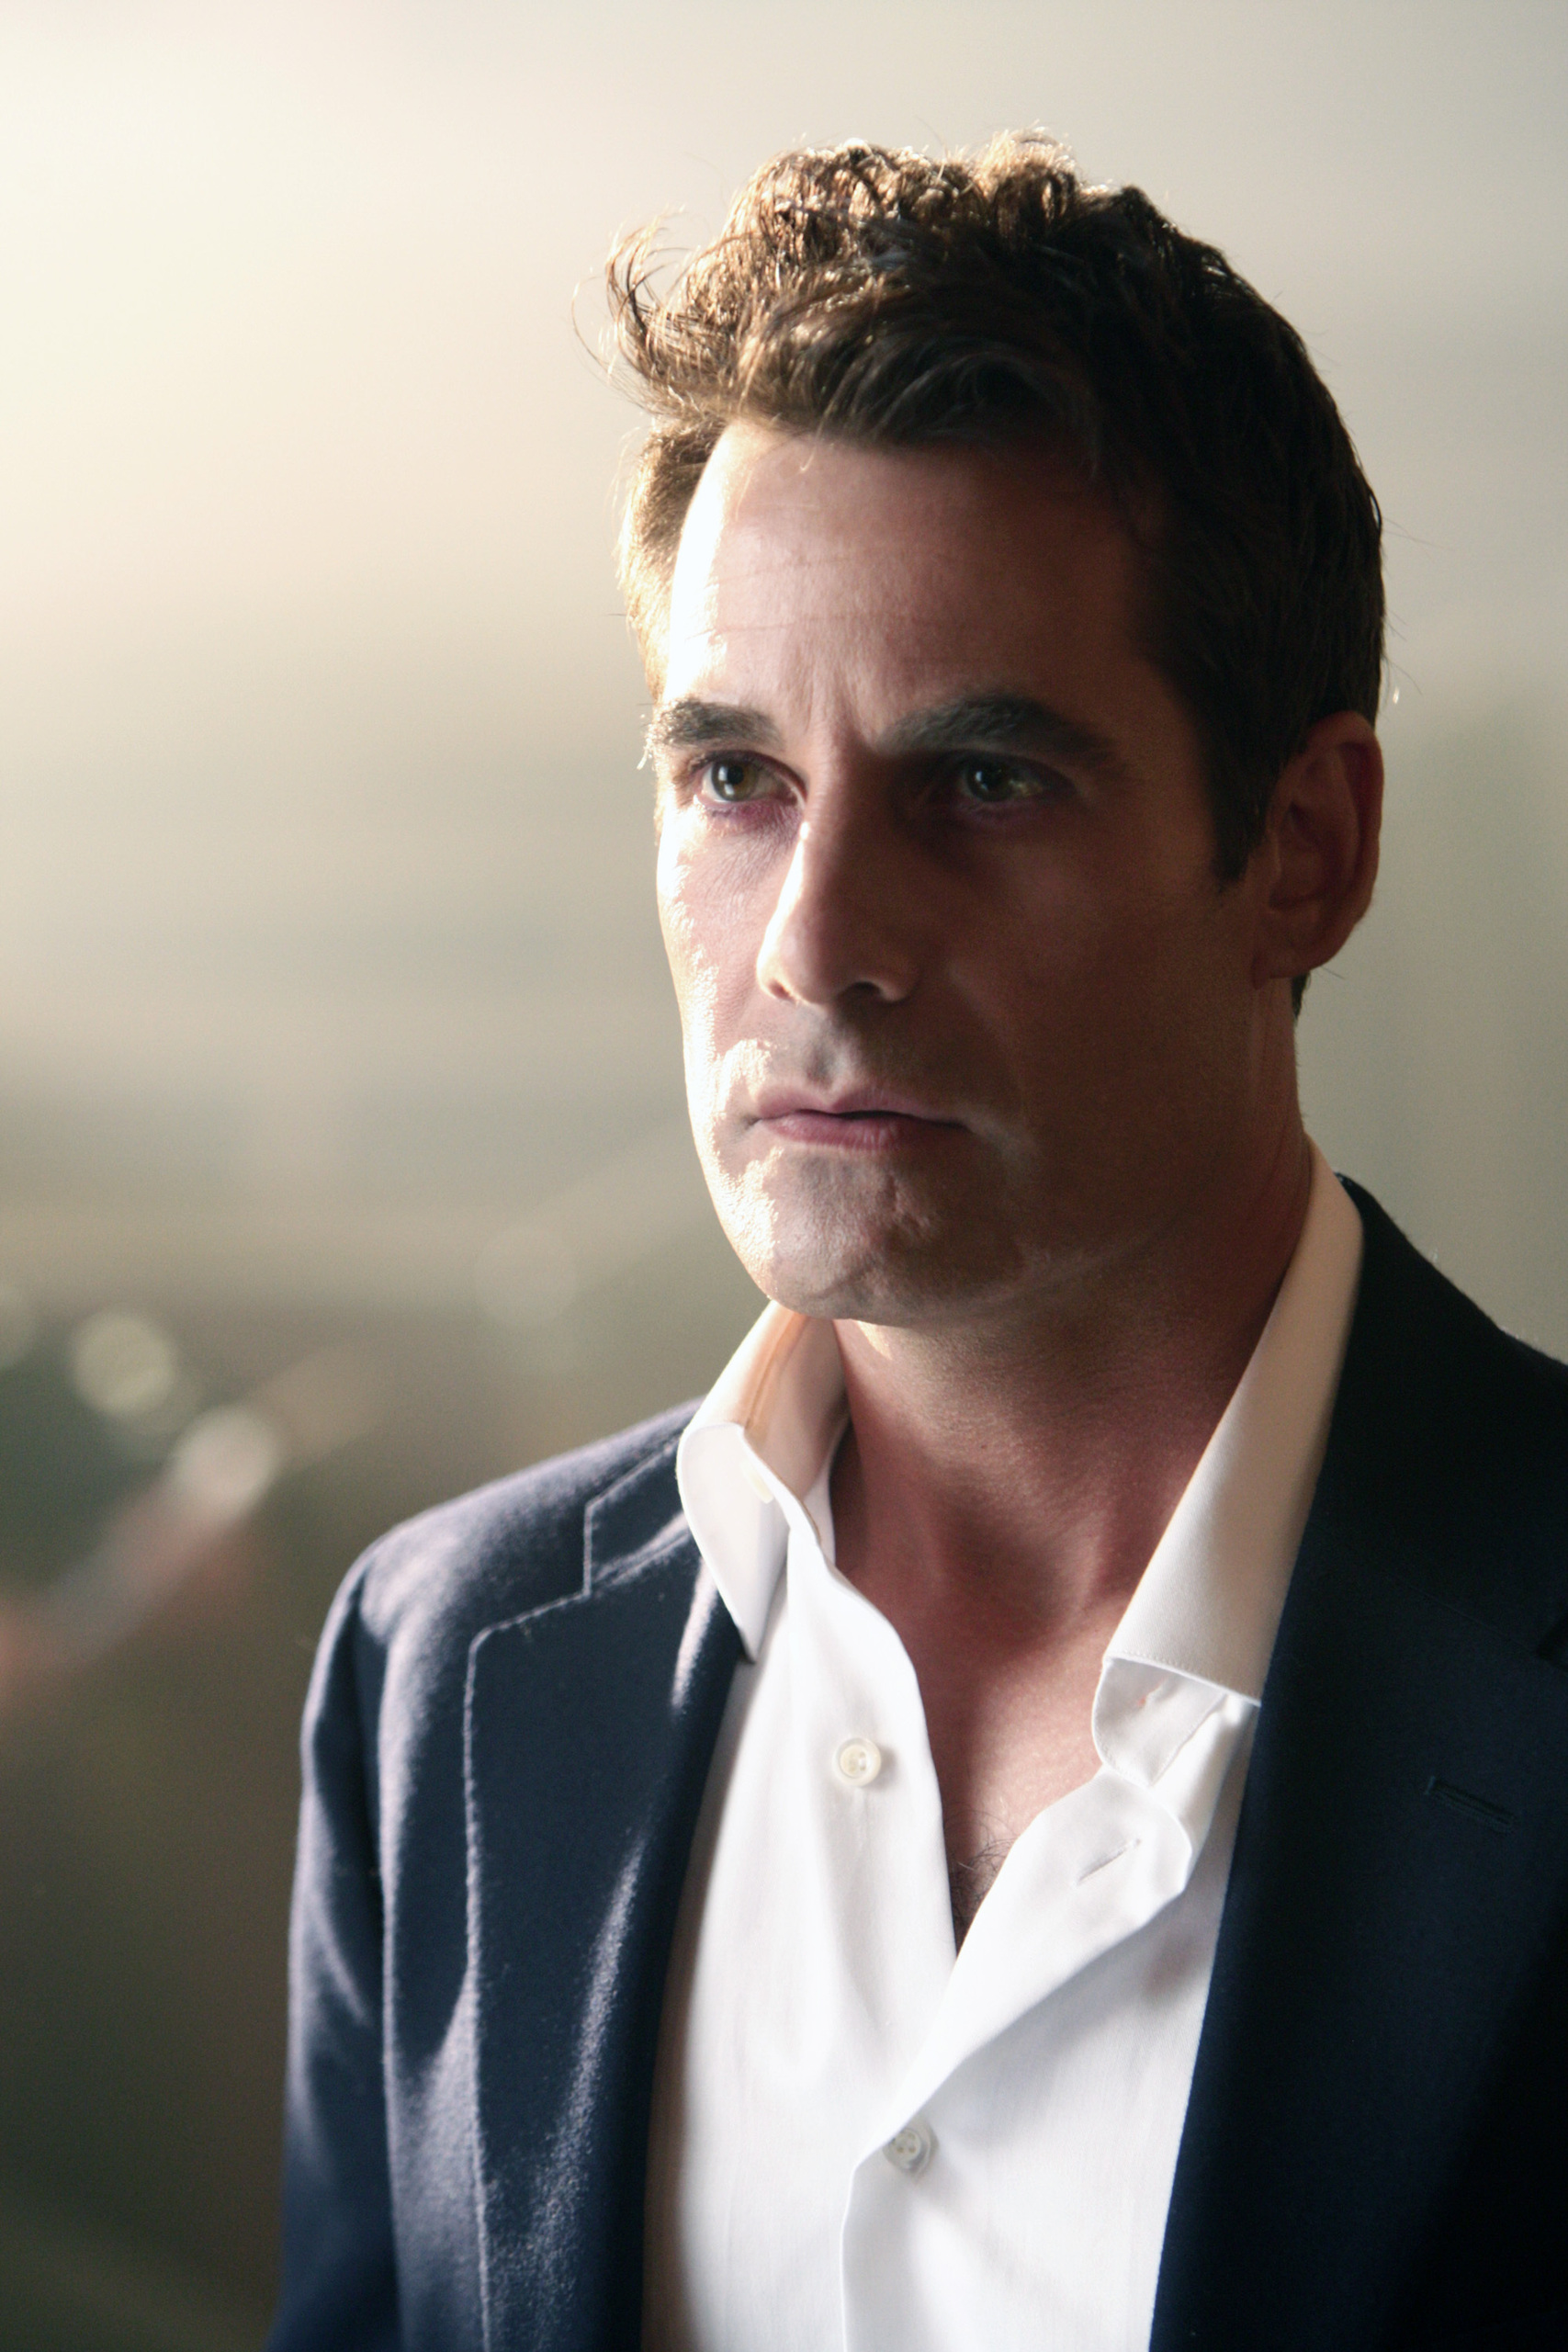 Heroes 3x01: The Second Coming